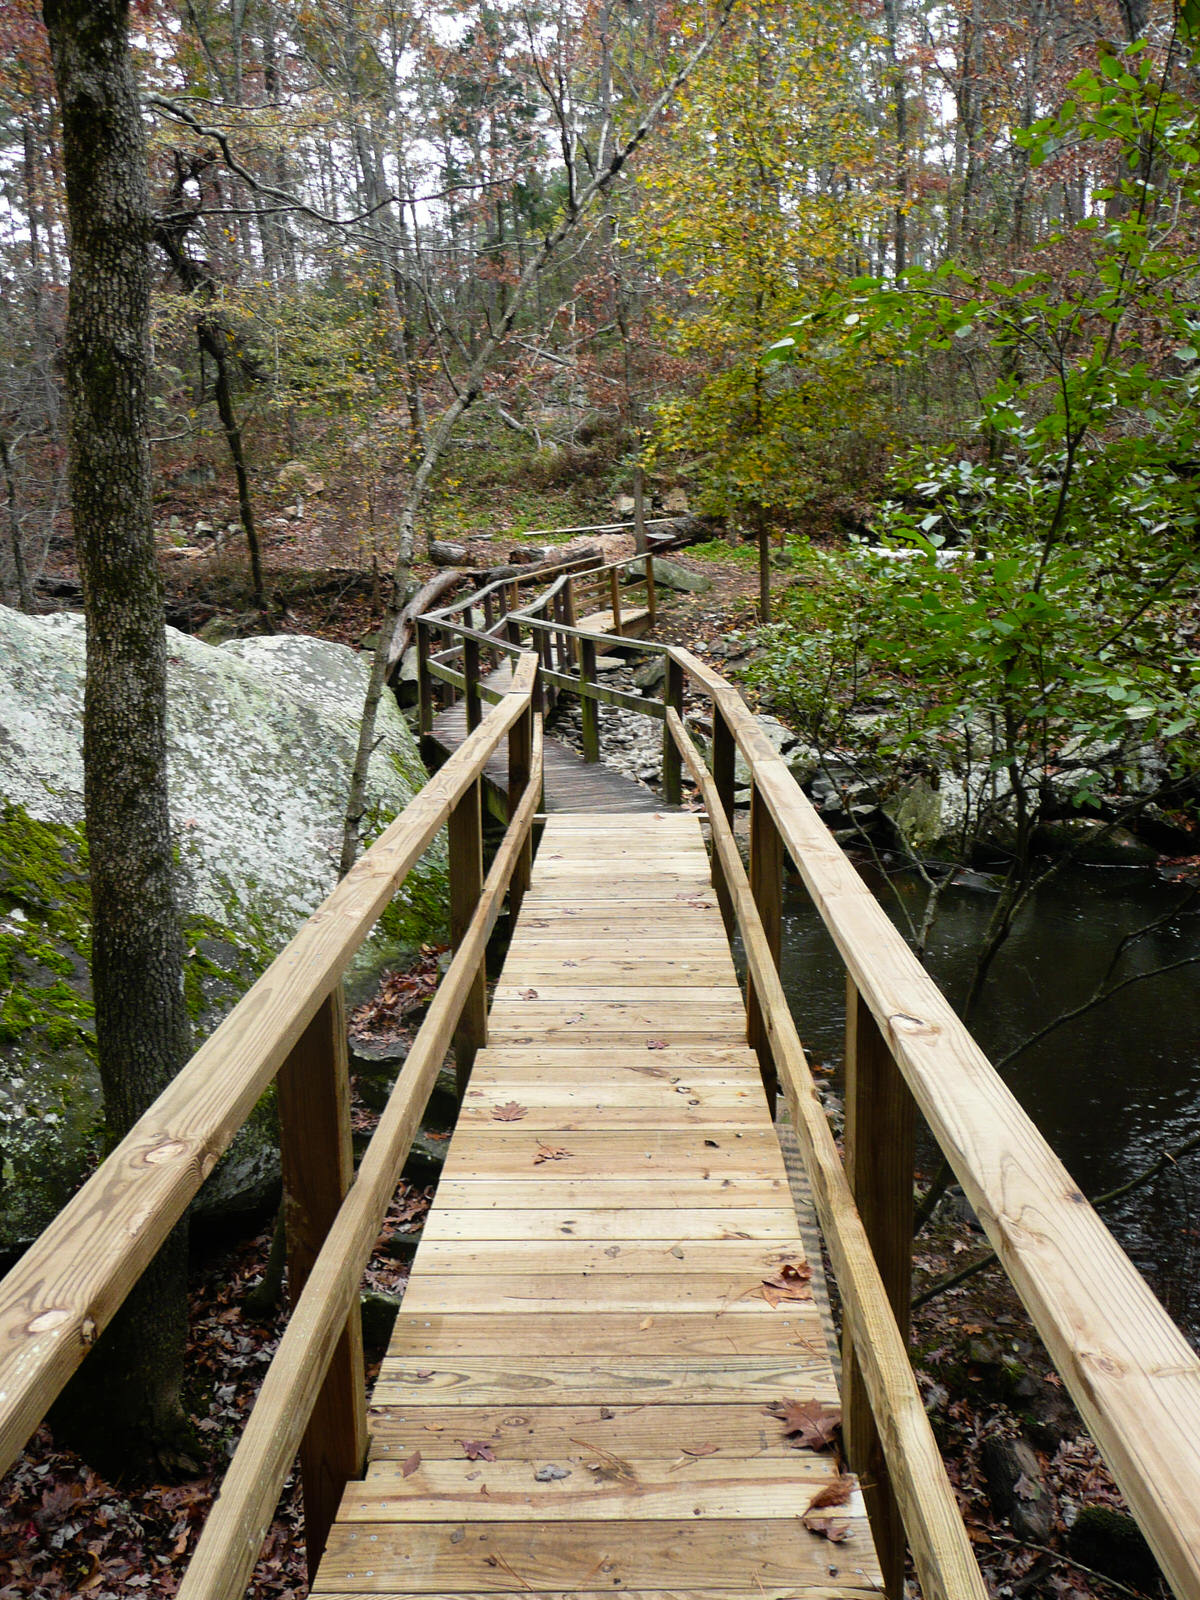 photo: Bridge over Cedar Creek on Cedar Creek Trail. Photo by Bryan Hodges.